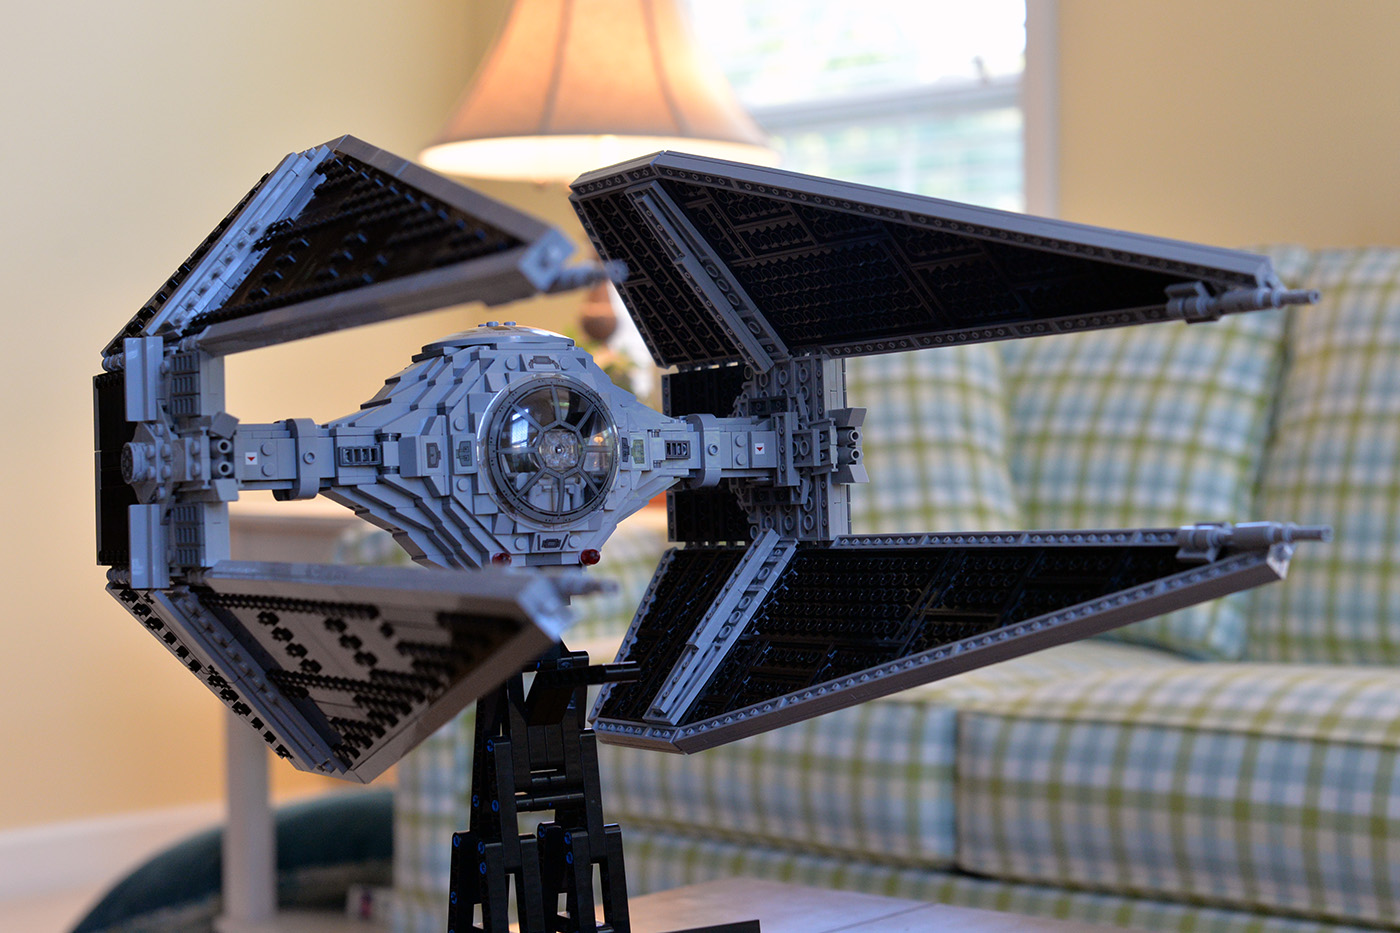 lego ucs tie fighter photo - 1